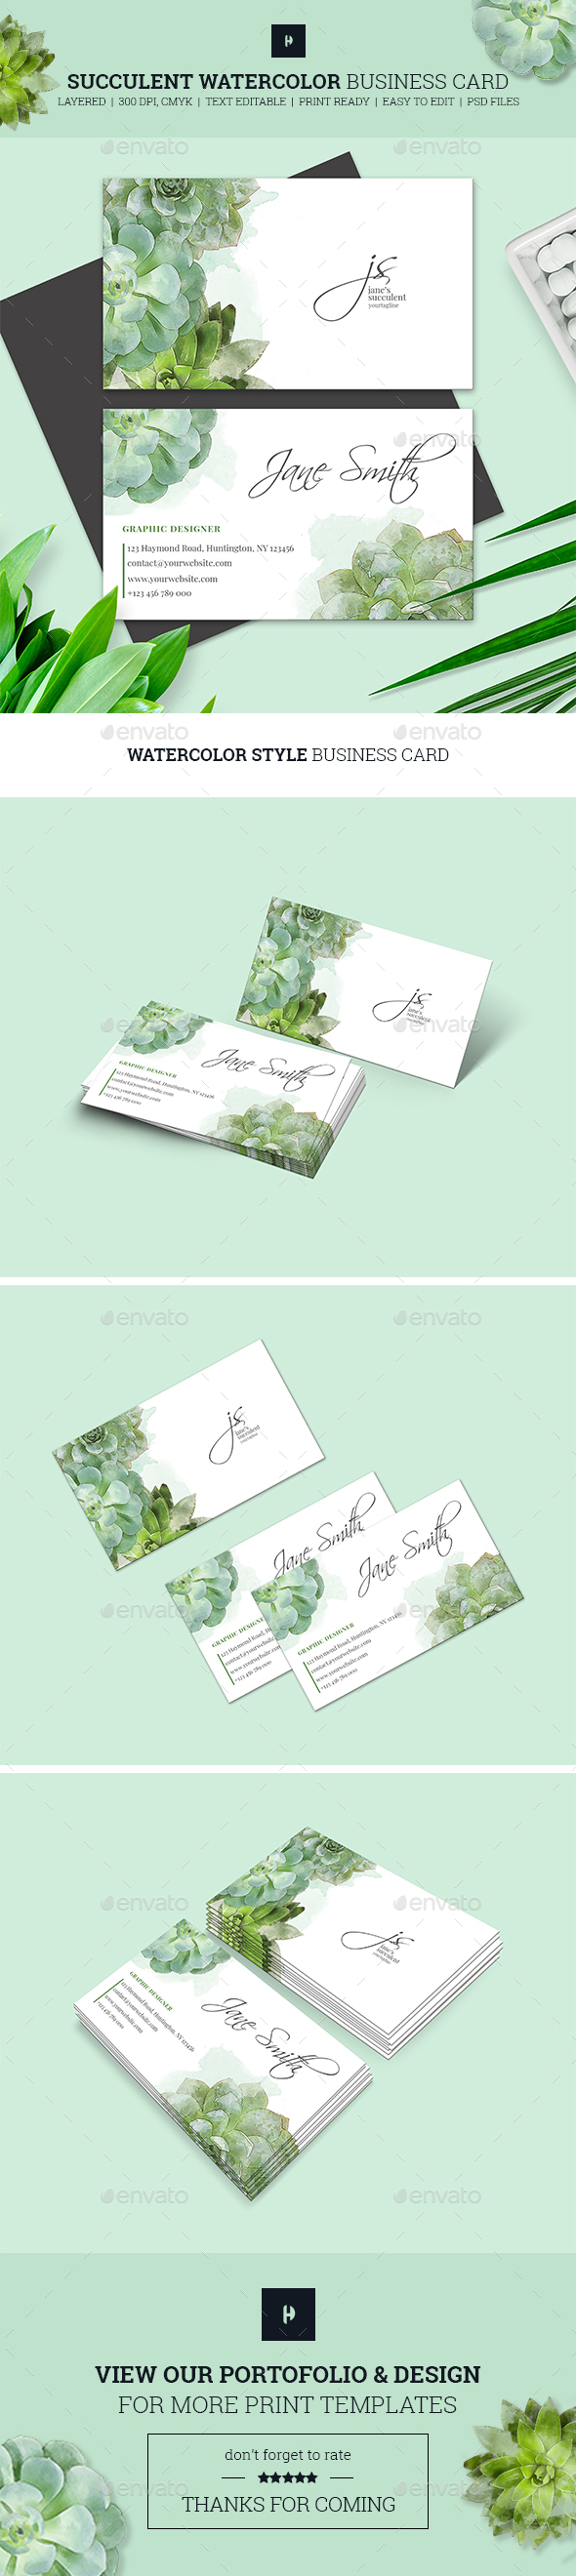 Succulent Watercolor Business Card 02 - Business Cards Print Templates